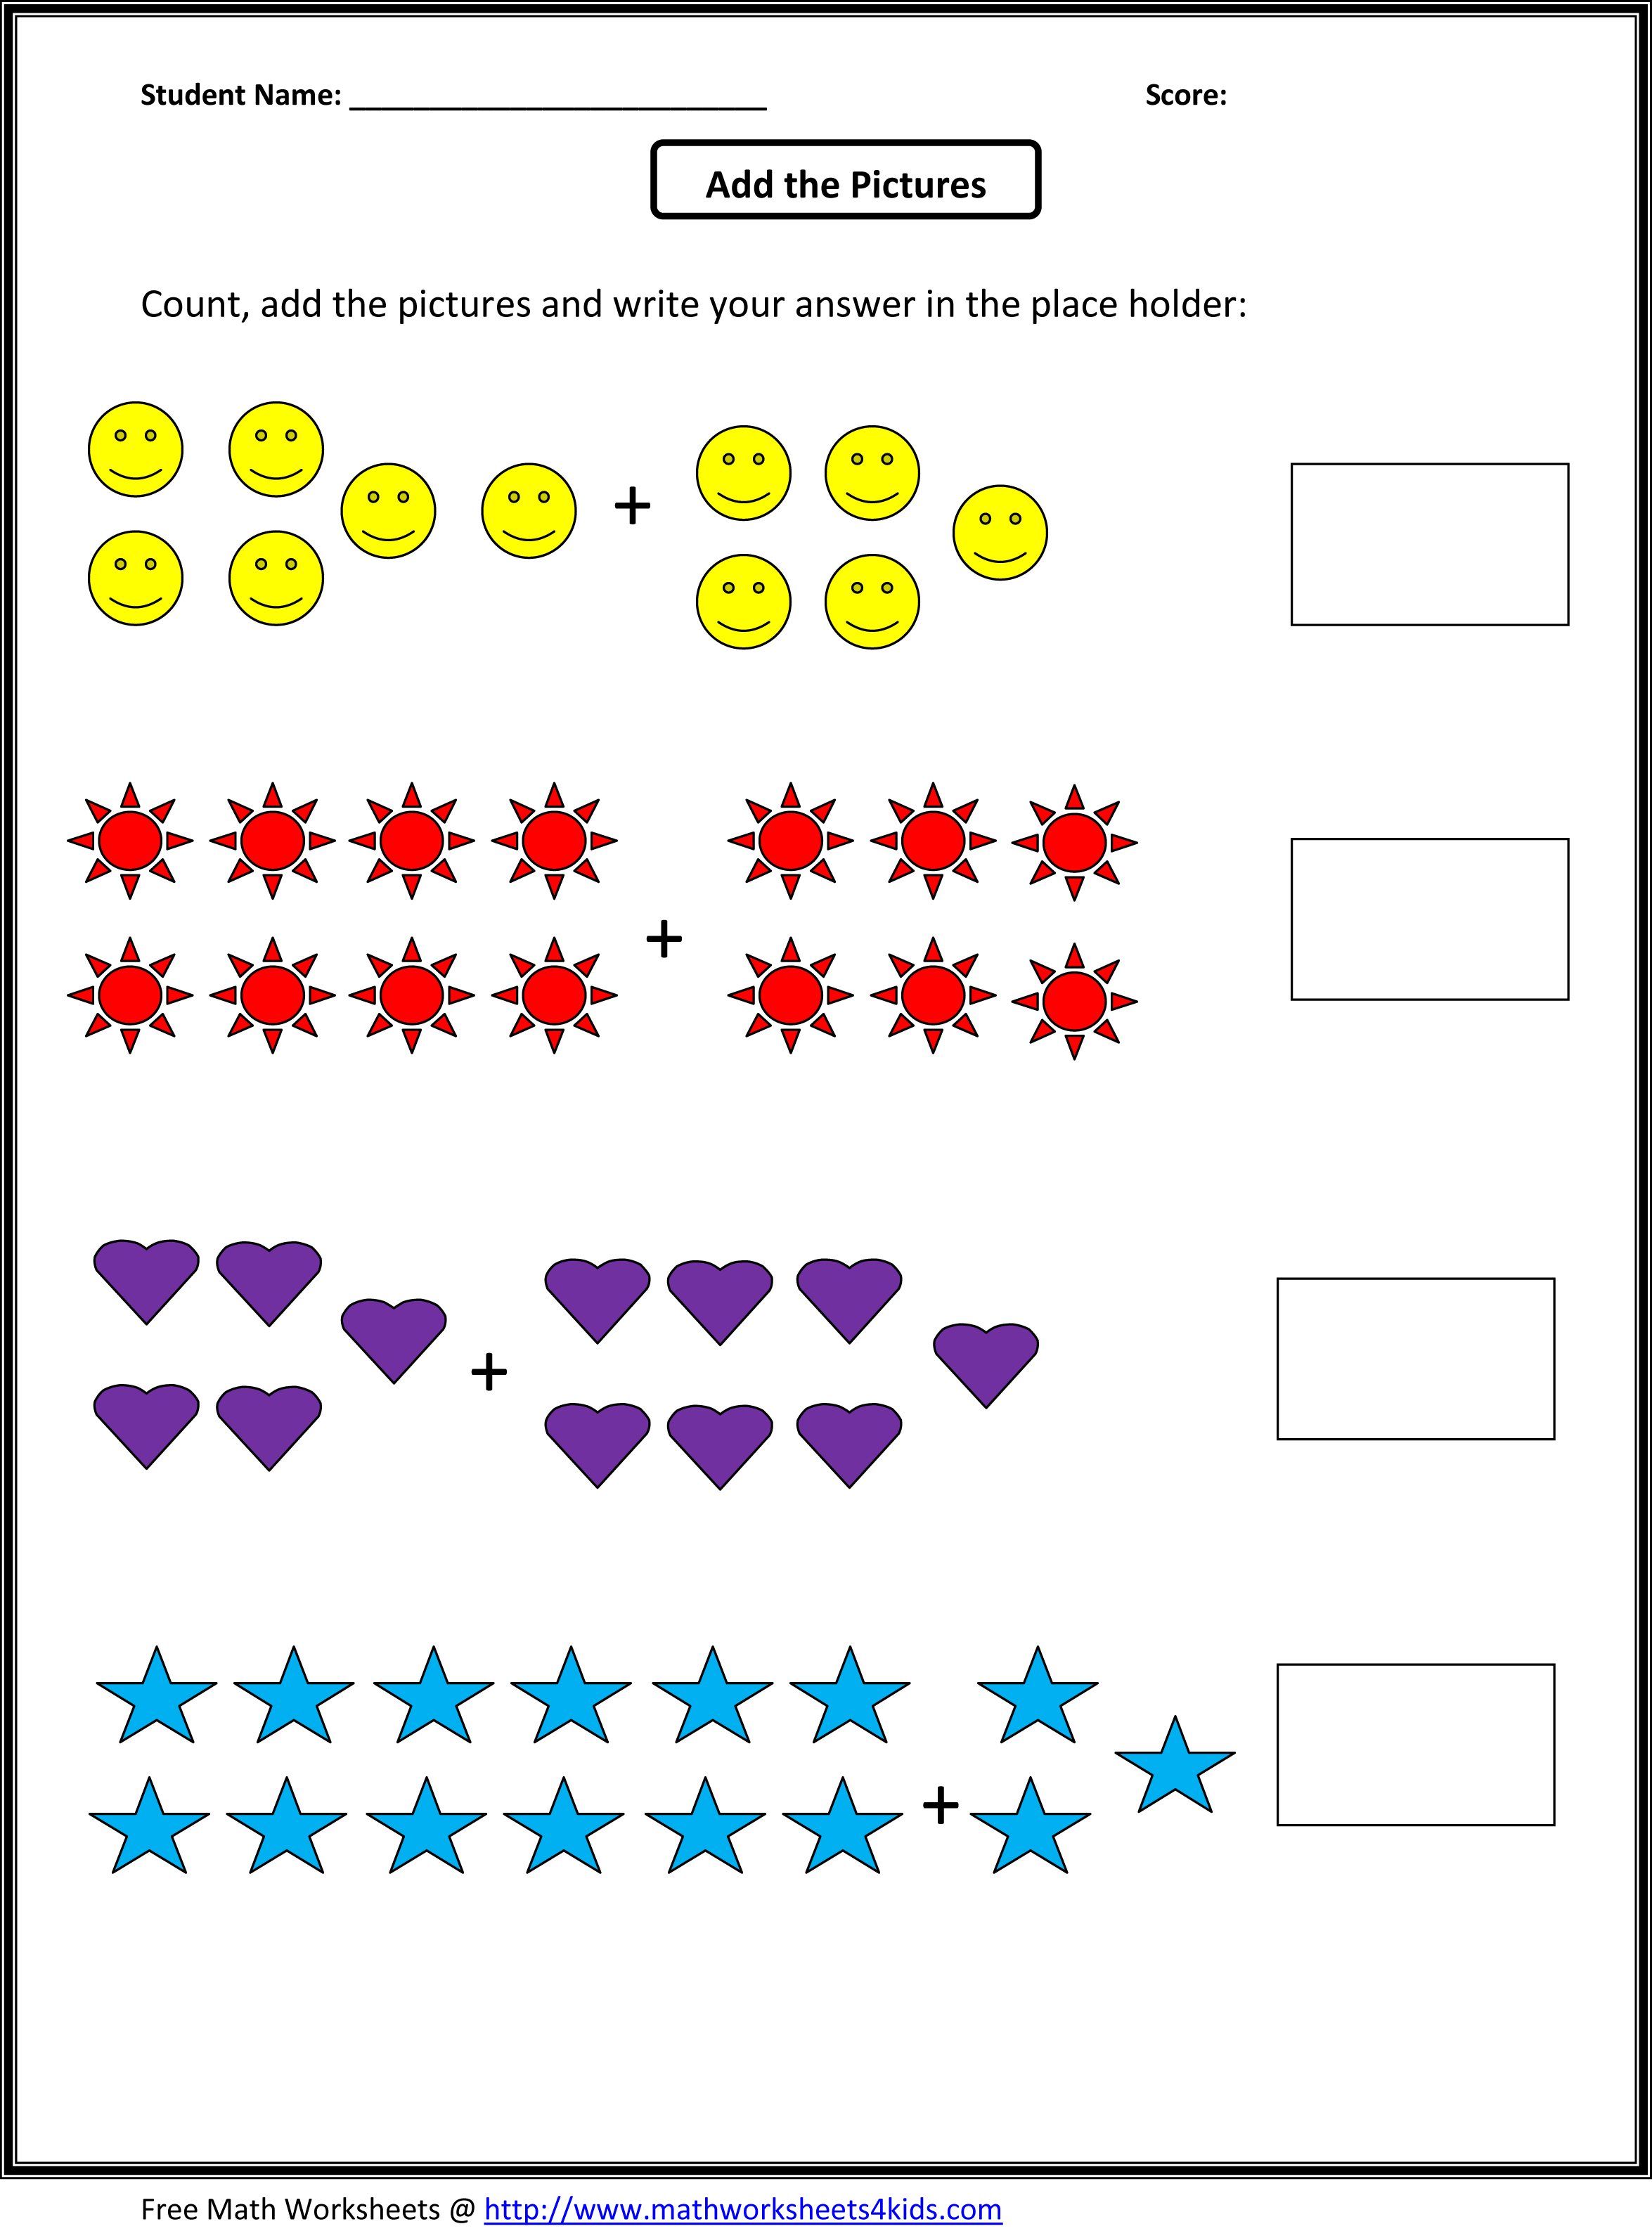 Proatmealus  Stunning Grade  Maths Worksheet  Reocurent With Goodlooking Math Worksheets For St Grade Free  Reocurent With Captivating Acid Nomenclature Worksheet Also Cartoon Analysis Worksheet In Addition Free Pronoun Worksheets And Food Inc Worksheet Answers As Well As Significant Figures Worksheet Answers Additionally Factoring Review Worksheet From Reocurentcom With Proatmealus  Goodlooking Grade  Maths Worksheet  Reocurent With Captivating Math Worksheets For St Grade Free  Reocurent And Stunning Acid Nomenclature Worksheet Also Cartoon Analysis Worksheet In Addition Free Pronoun Worksheets From Reocurentcom